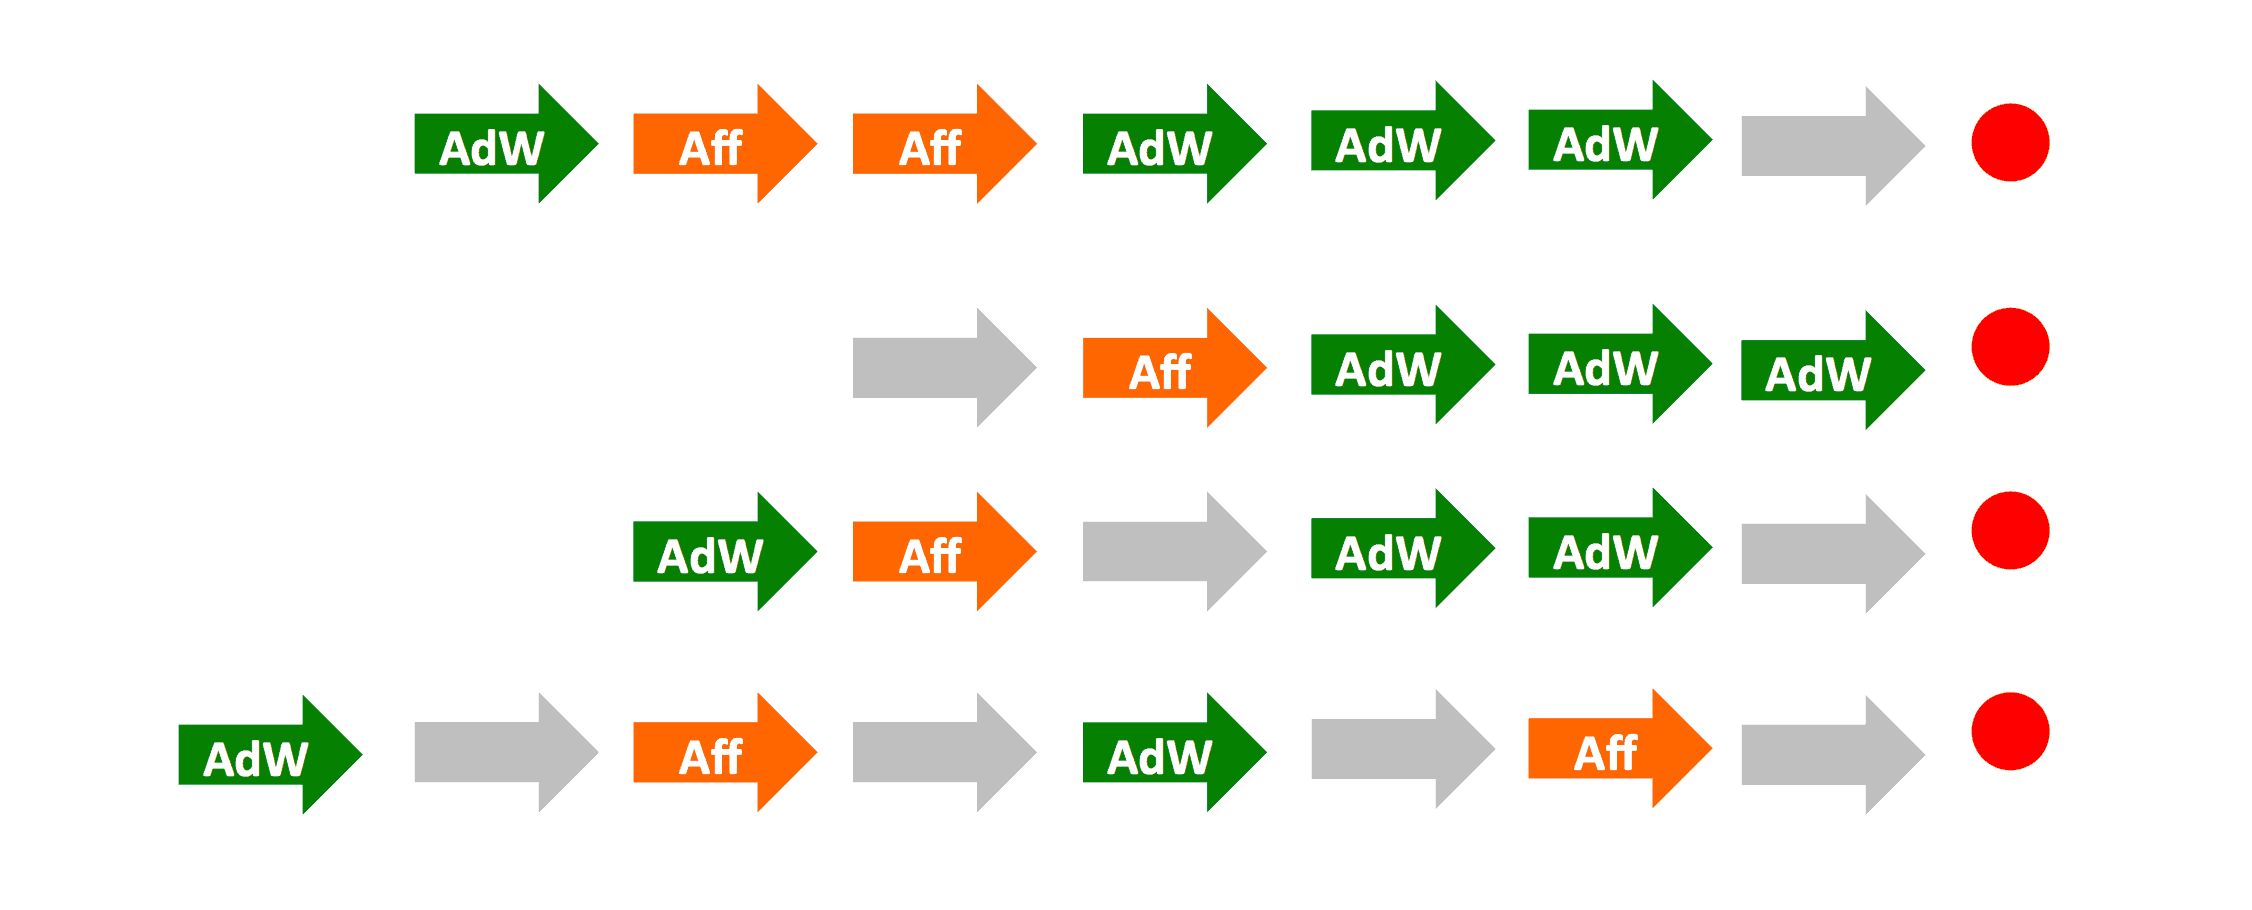 attribution model